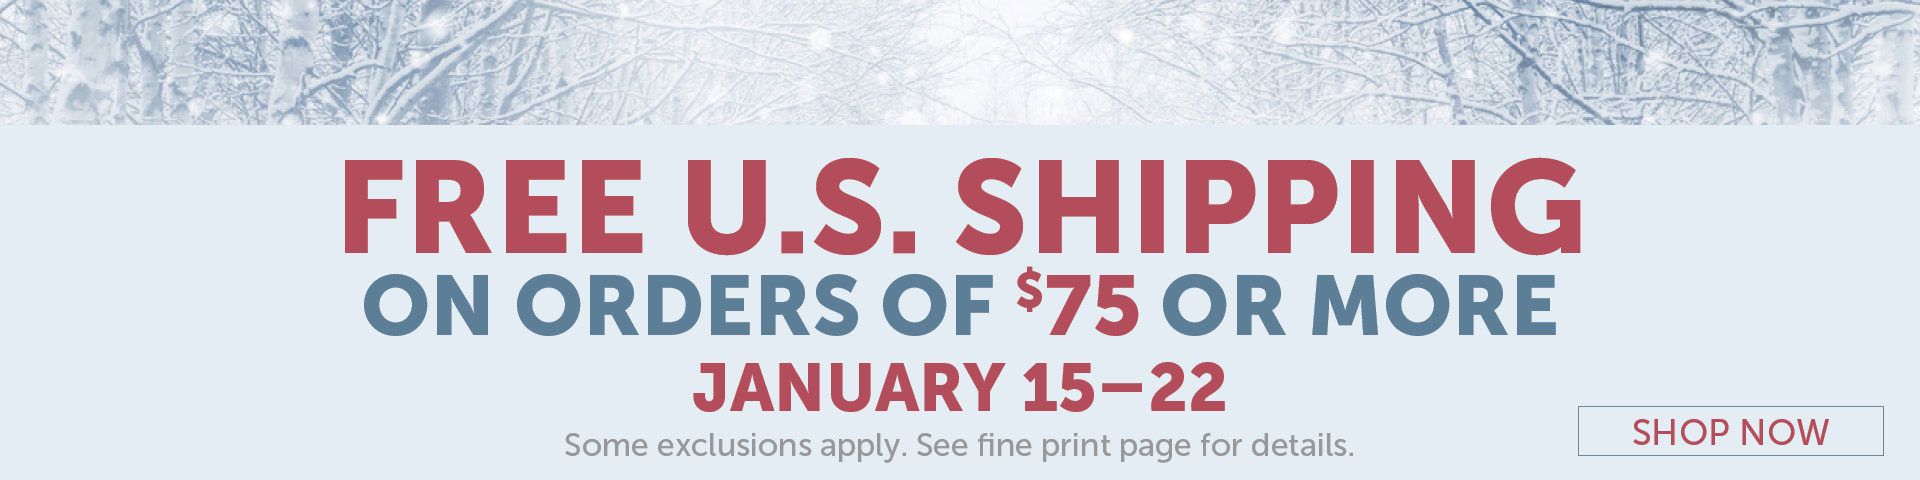 Free U.S. Shipping on Orders of $75 or more January 15–22.